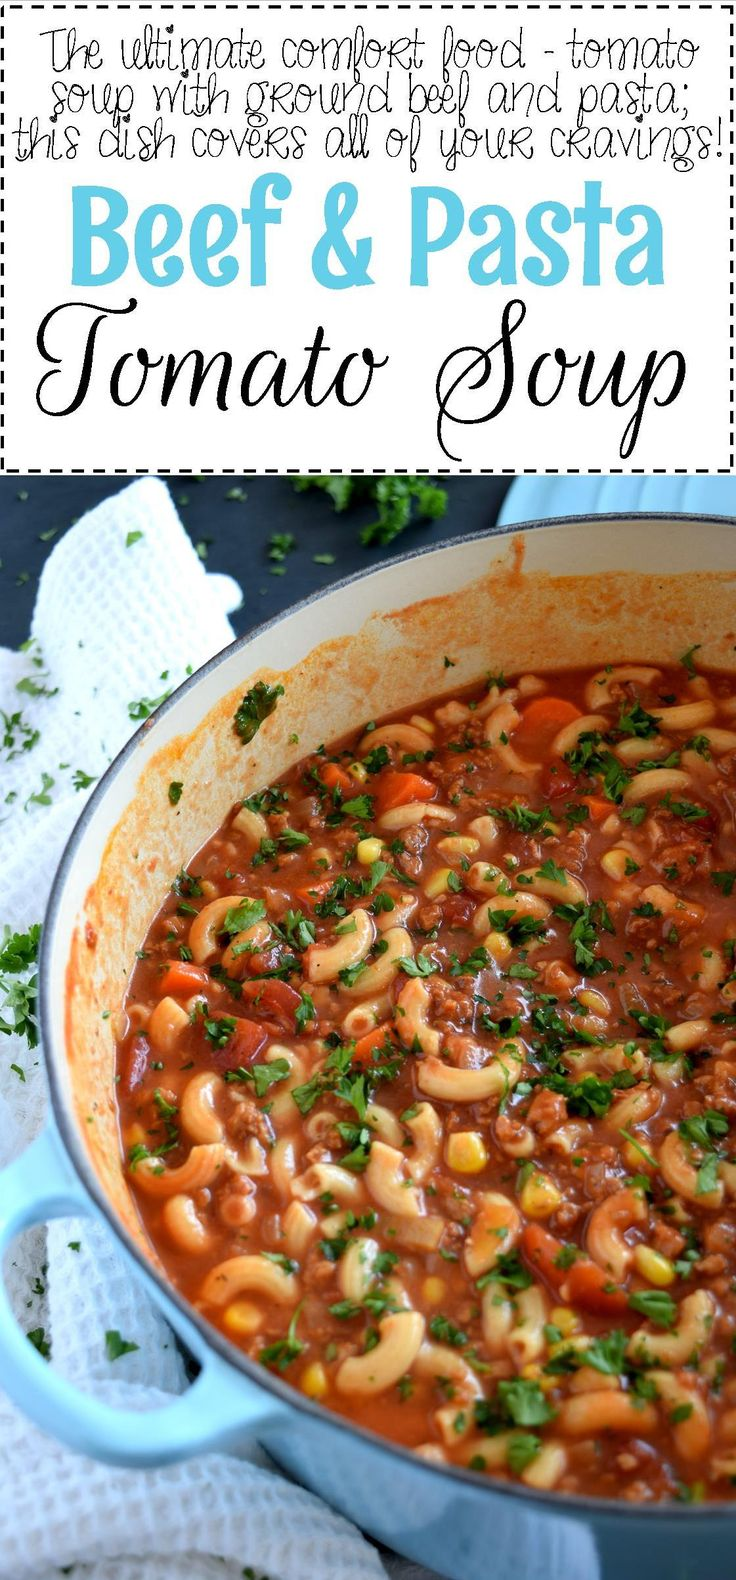 A soup that's a complete meal! Beef and Pasta Tomato Soup covers all the bases in terms of being a well-balanced meal. It's delicious, hearty, mom/dad-approved, and kid-friendly too! If you have a child in your household, you'll be able…